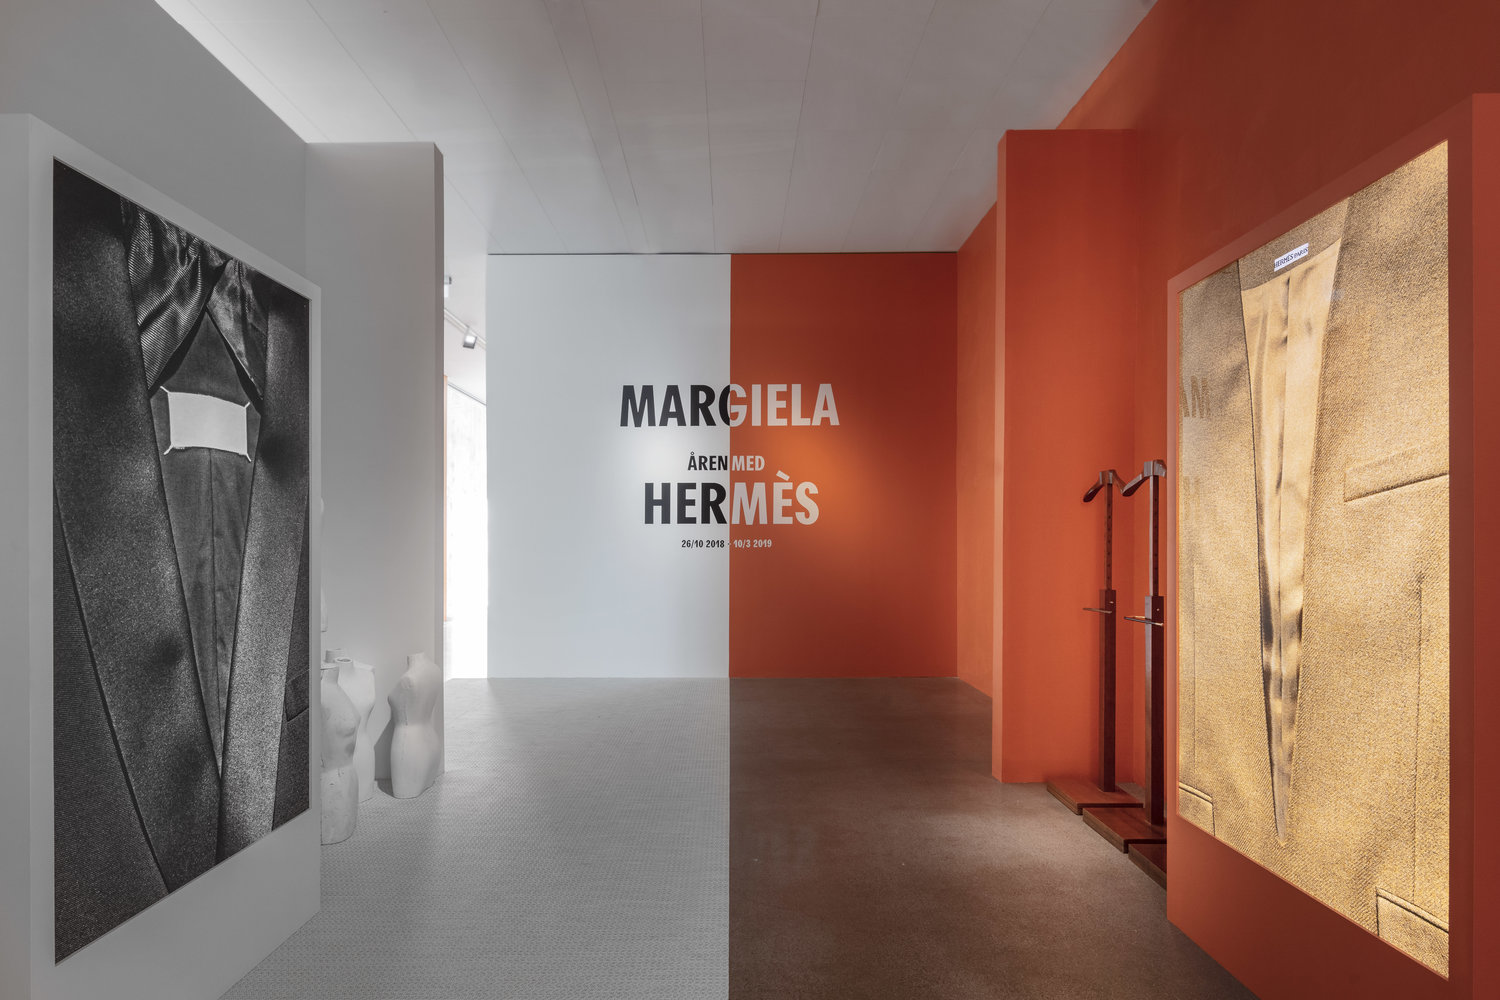 margiela-the-hermes-years-3-photo-by-jean-baptiste-beranger-7712x5141-px.jpg